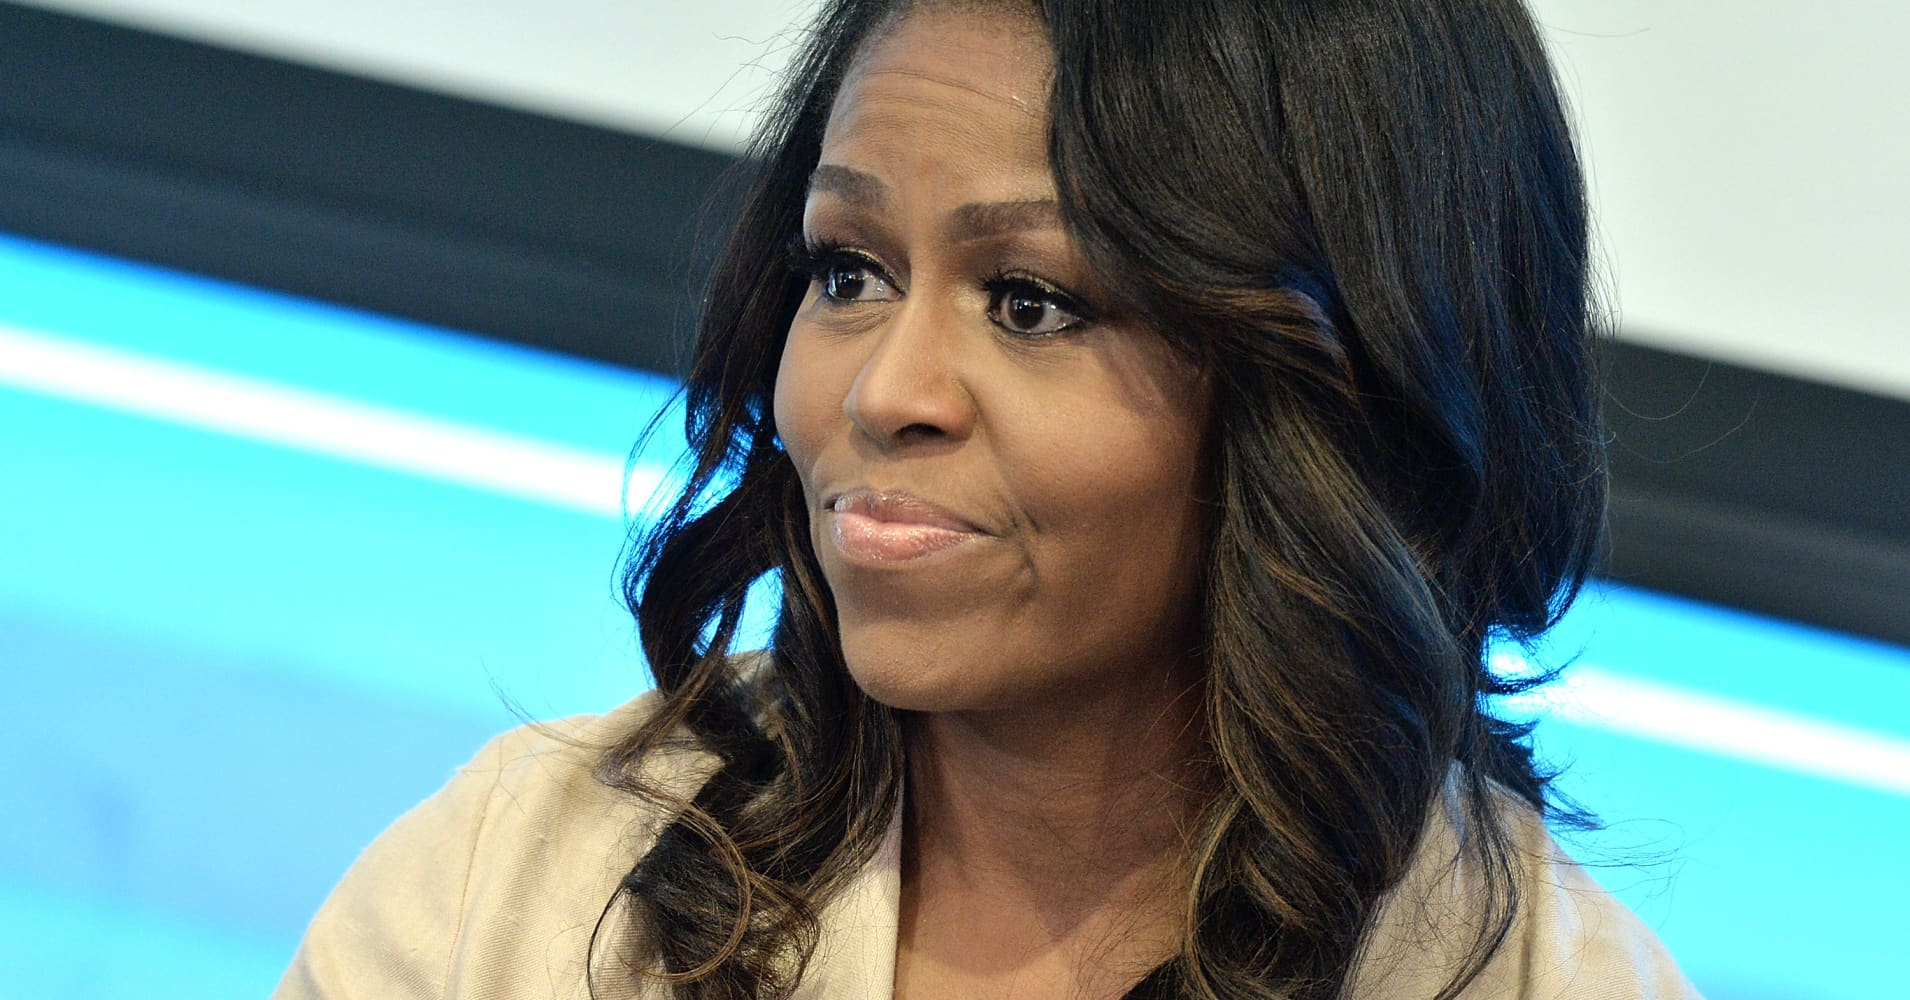 Michelle Obama: I'll 'never forgive' Trump for pushing the birther conspiracy theory